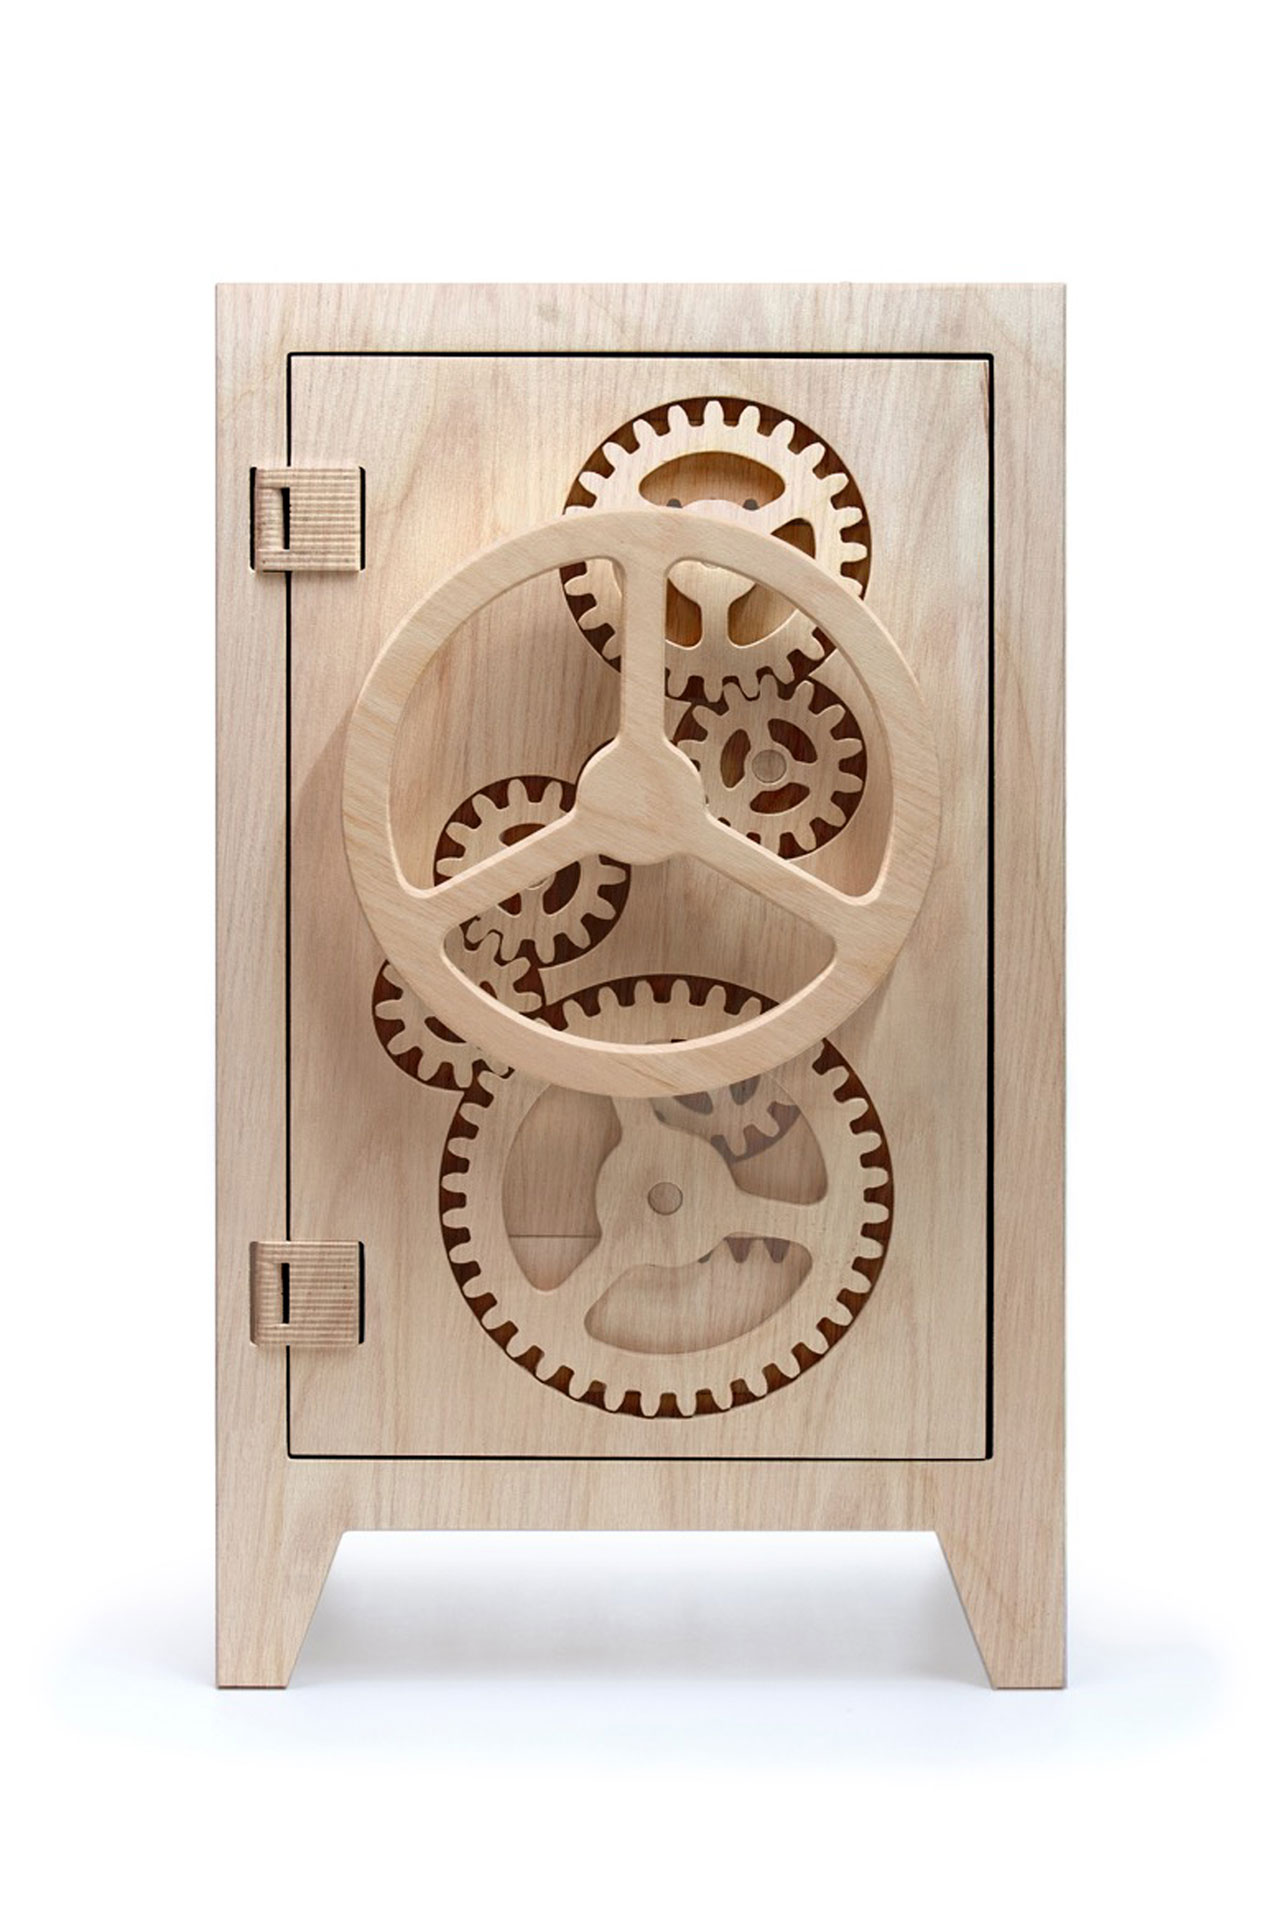 Mr Knox cupboard by Stephan Sieperman. The cog mechanism is fully functional and is all made of plywood. Photo courtesy Judy Straten Art-Design.